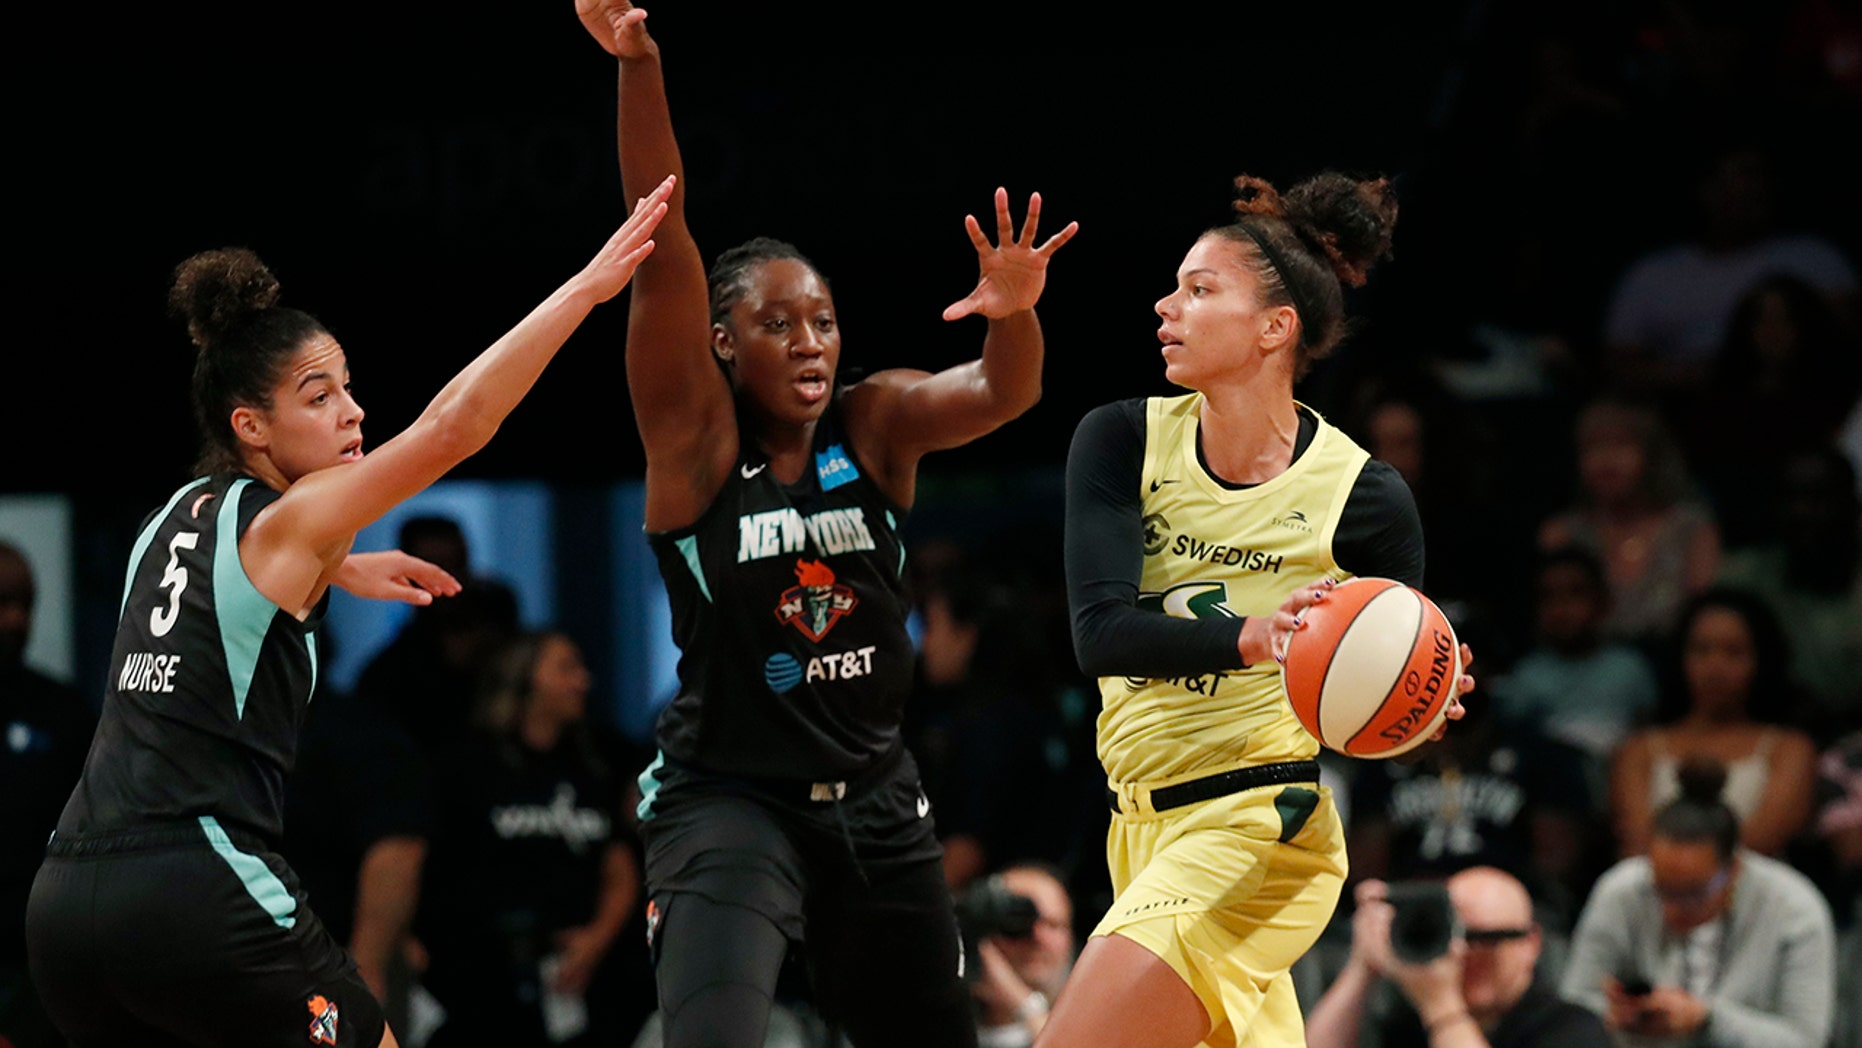 Seattle Storm forward Alysha Clark, right, passes as New York Liberty guard Kia Nurse, left, and center Tina Charles,center, defend during the first half of a WNBA basketball game, Sunday, Aug. 11, 2019, in New York. (AP Photo/Kathy Willens)